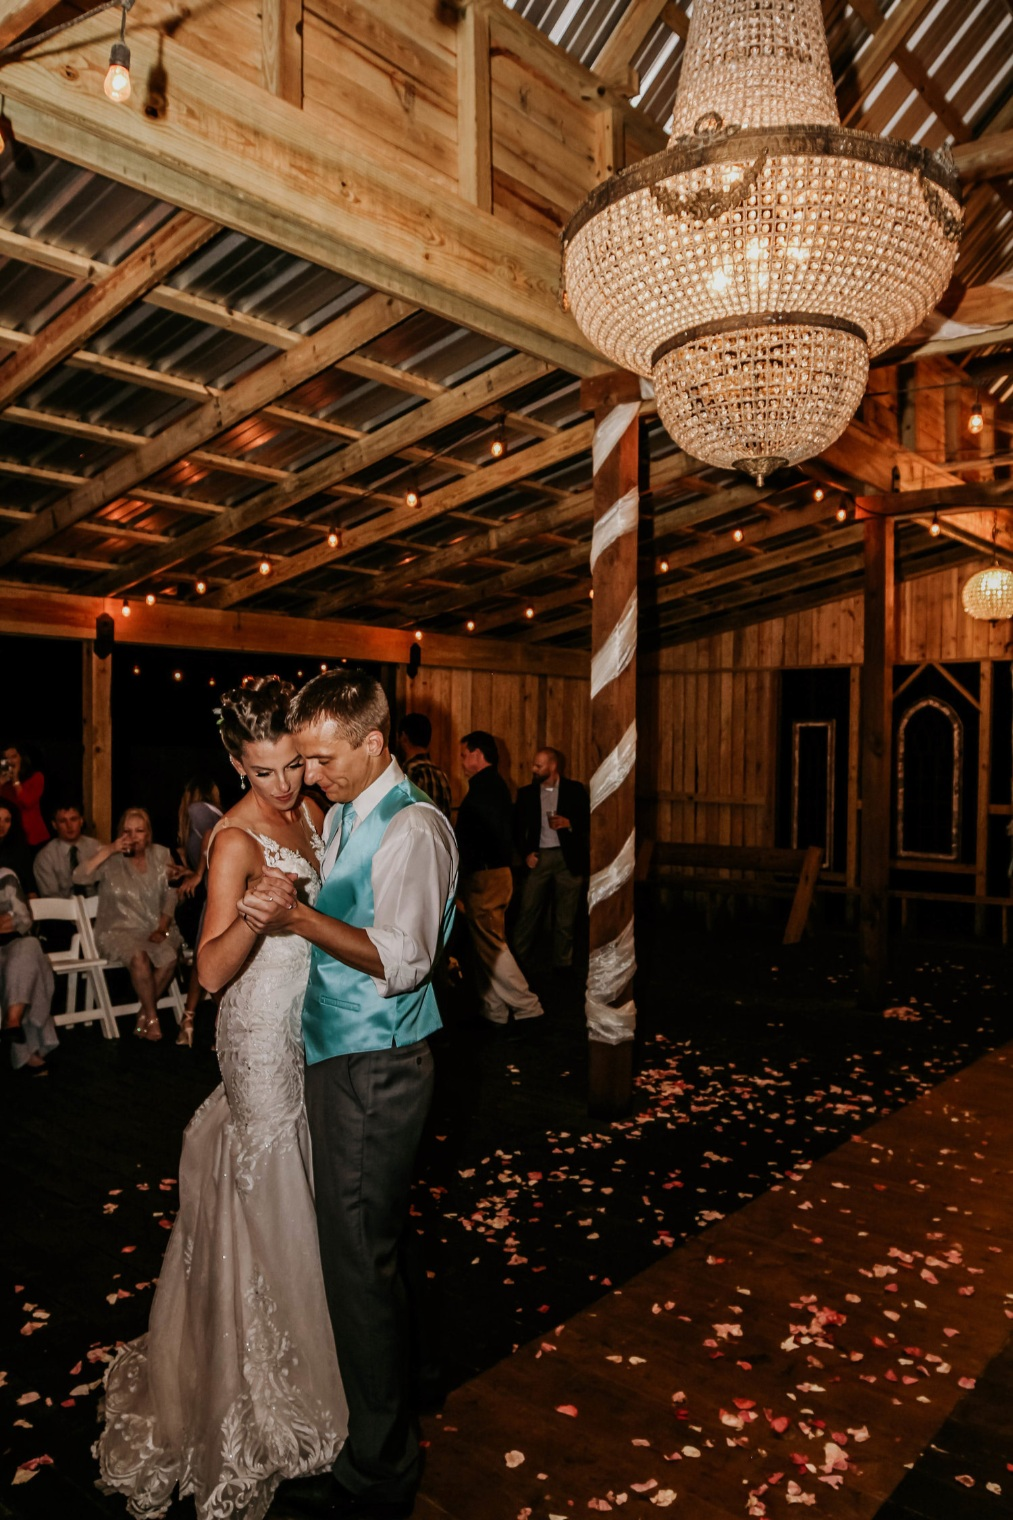 The Grand Hall At Deer Lake Lodge   Rustic Wedding Venue in Montgomery County TX   Ranch Style Wedding Venue North Houston   Texas Barn Wedding Venue   Texas Country Wedding Venue   Inexpensive Affordable Outdoor Wedding Venue Houston TX   Wedding Venues Conroe, Willis, Magnolia TX